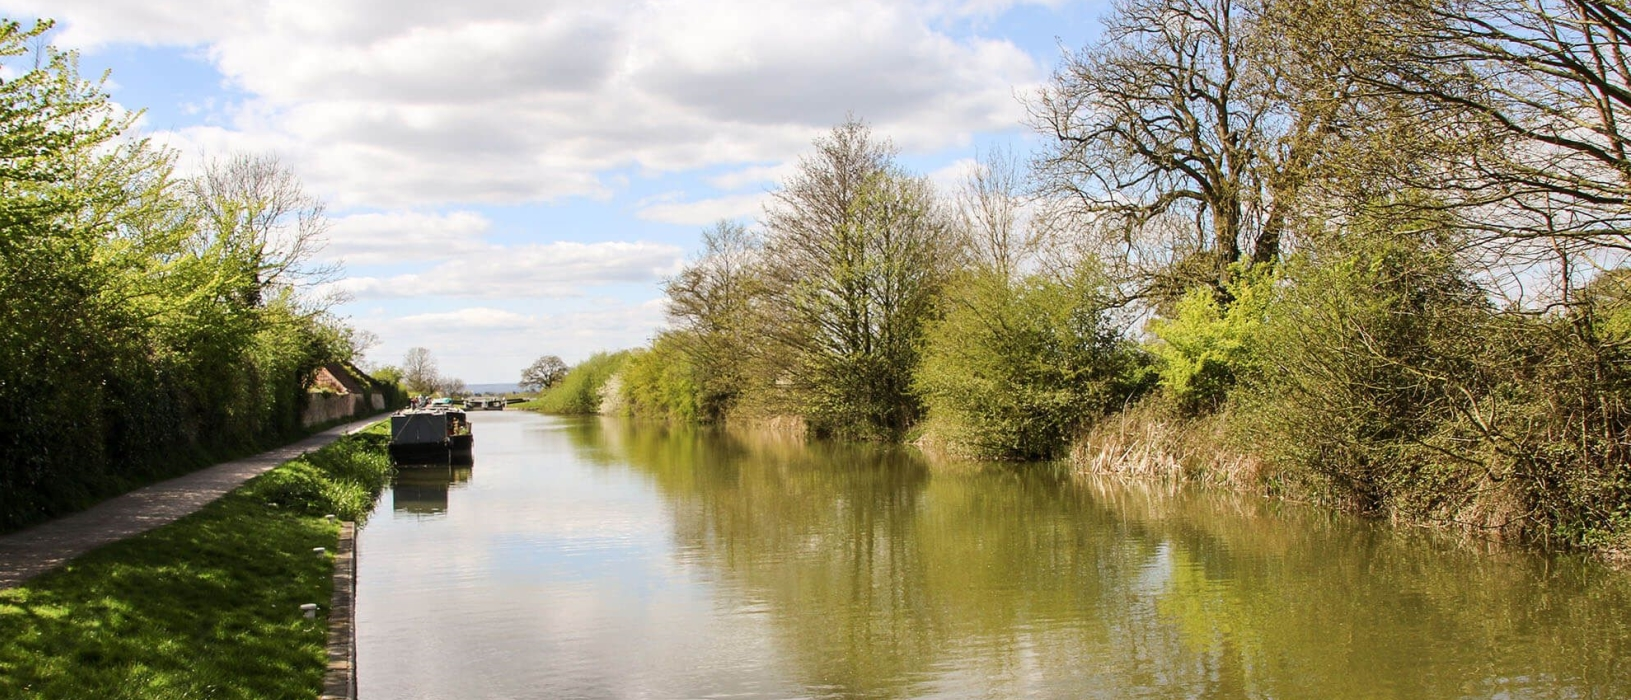 Explore the Kennet & Avon canal (3/6)